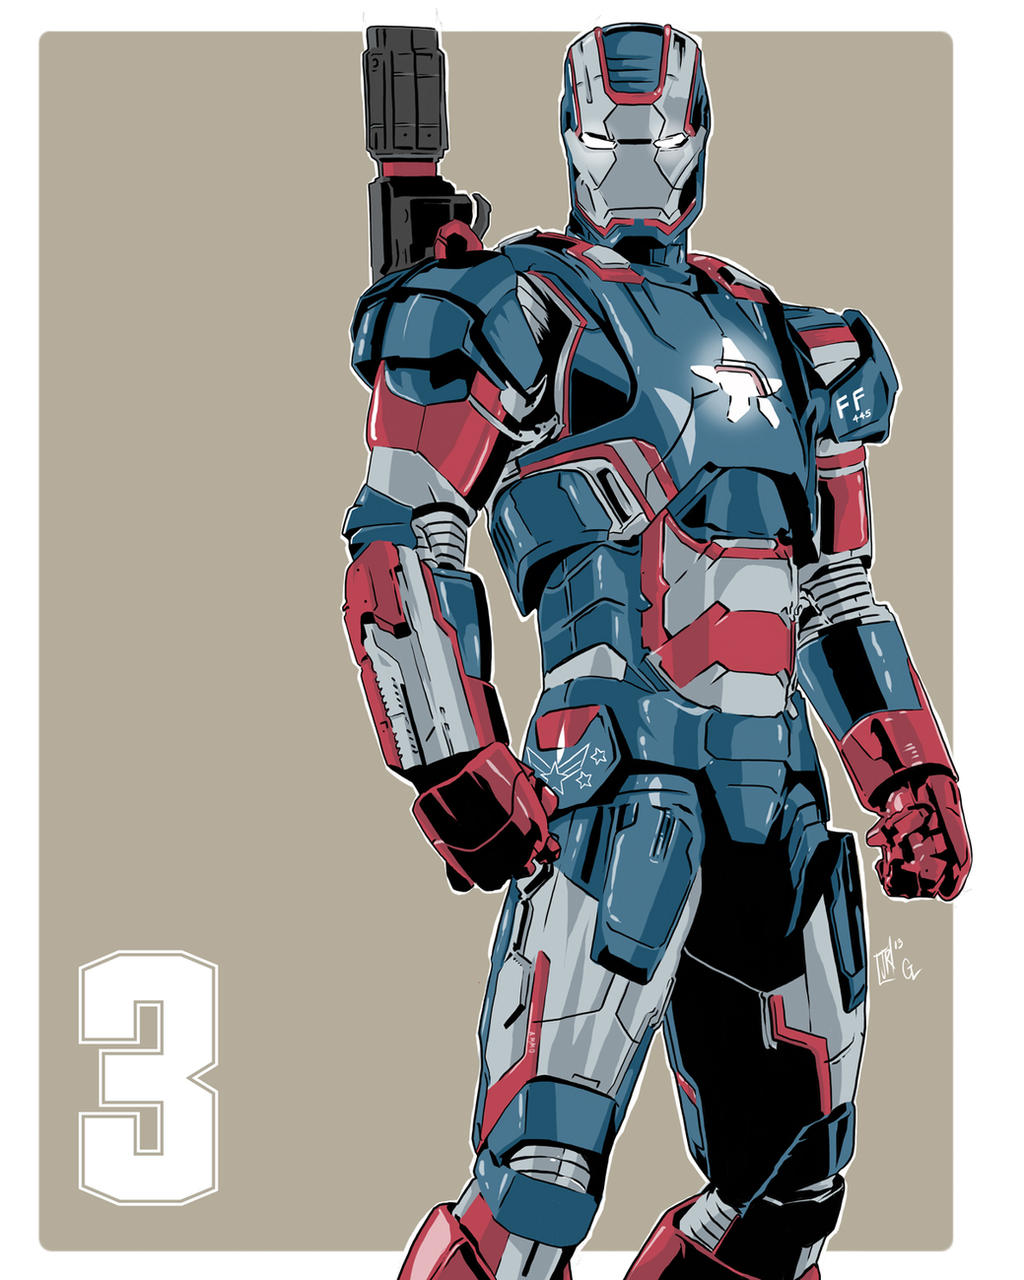 holiday coloring pages iron patriot coloring pages iron patriot by 117art on deviantart - Iron Man Patriot Coloring Pages